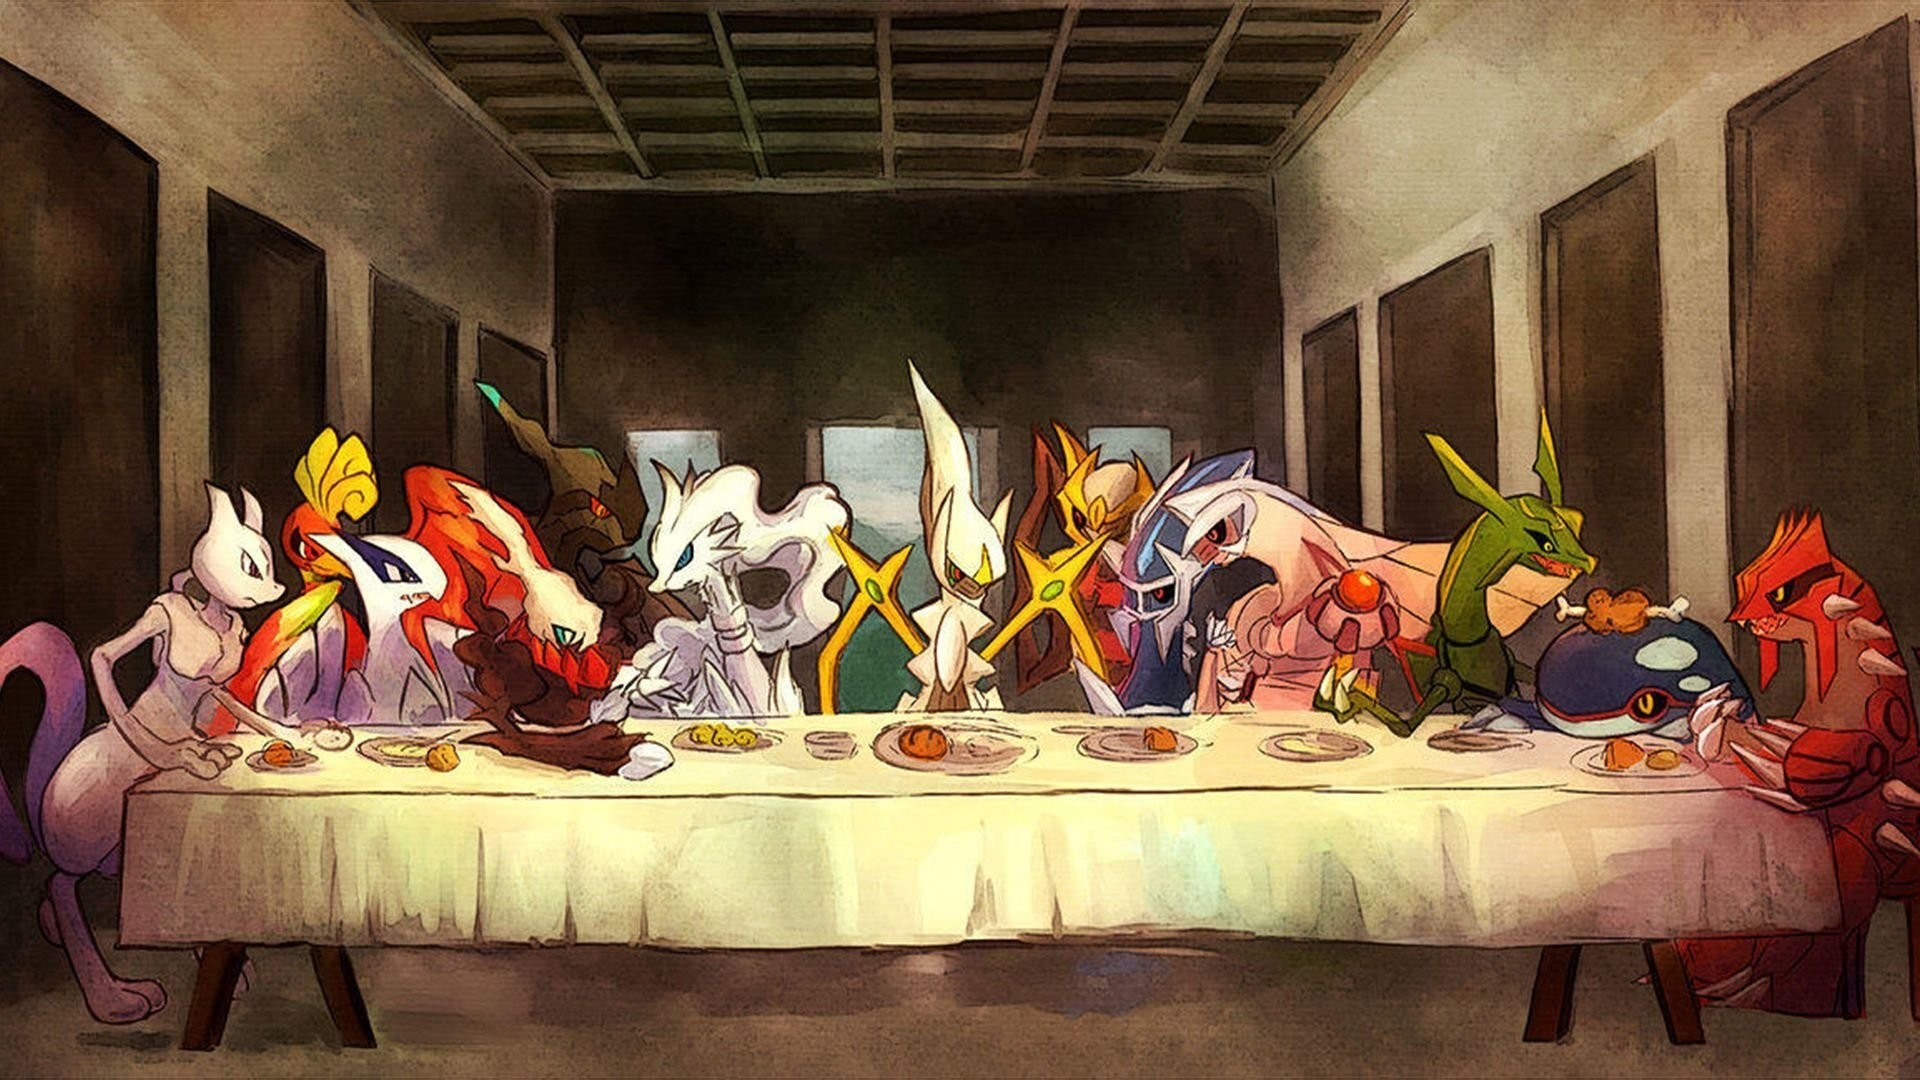 Res: 1920x1080, HD Wallpaper | Background Image ID:838916.  Anime Pokémon